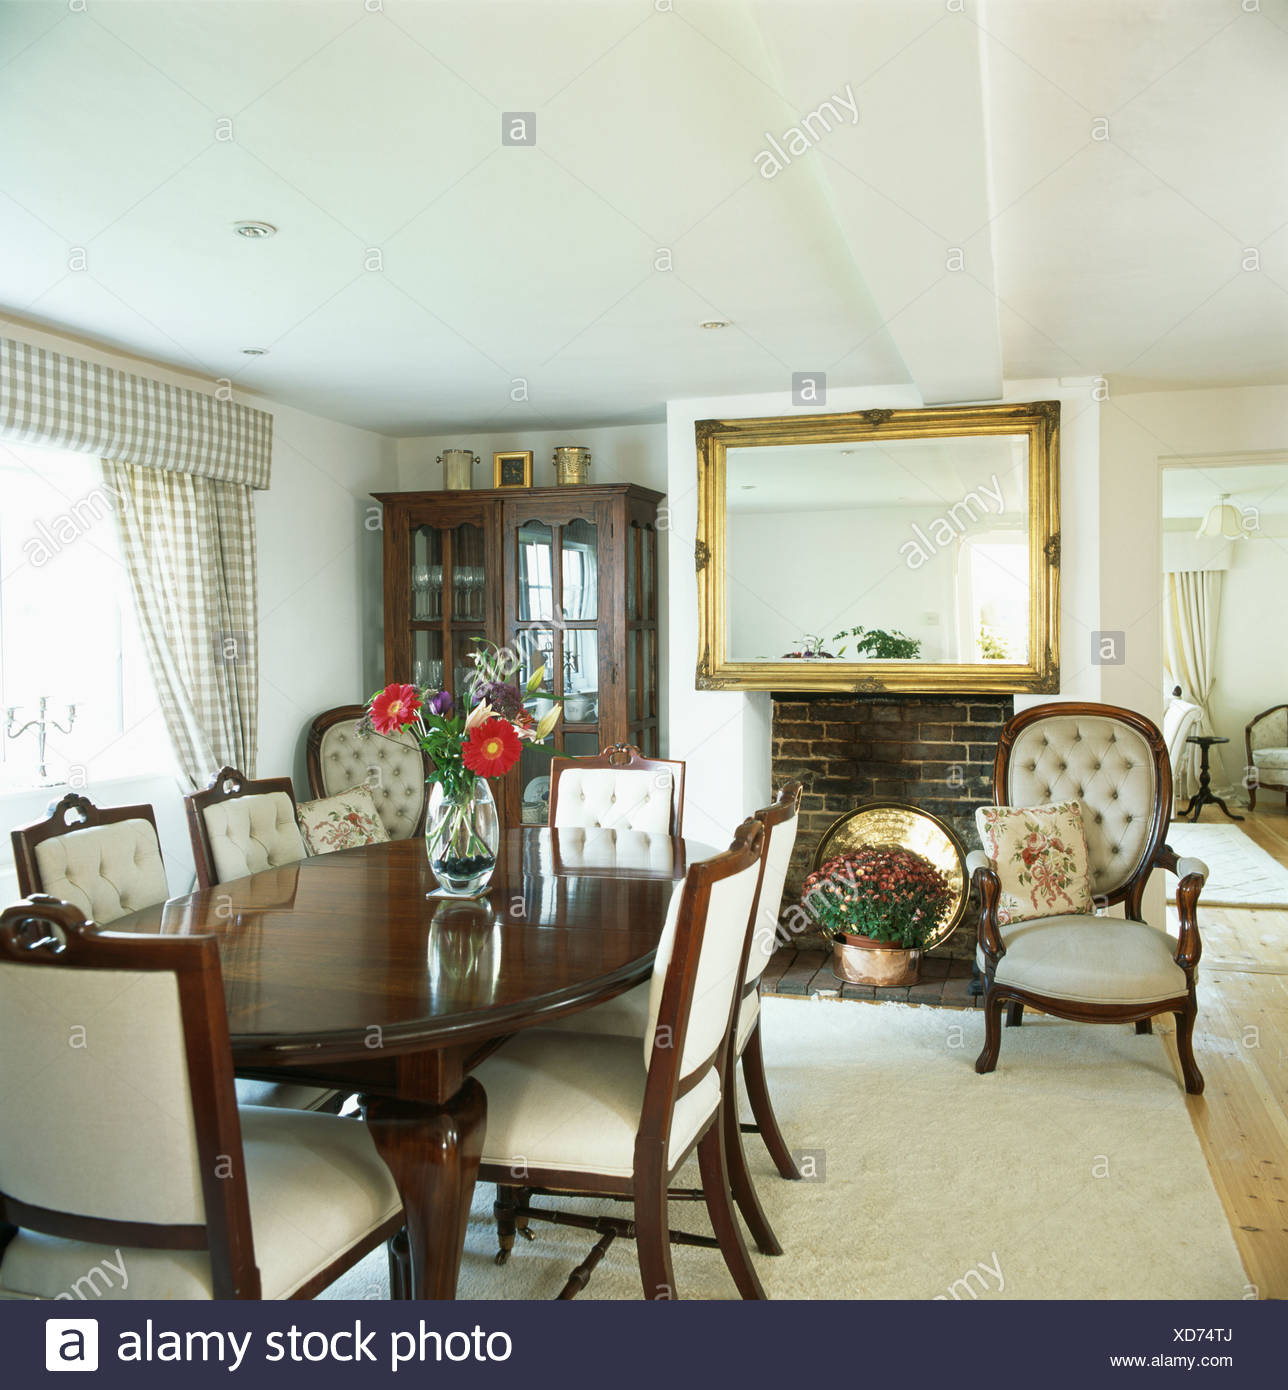 cream upholstered dining chairs recliner wooden chair and antique table in white country room with large gilt mirror above fireplace